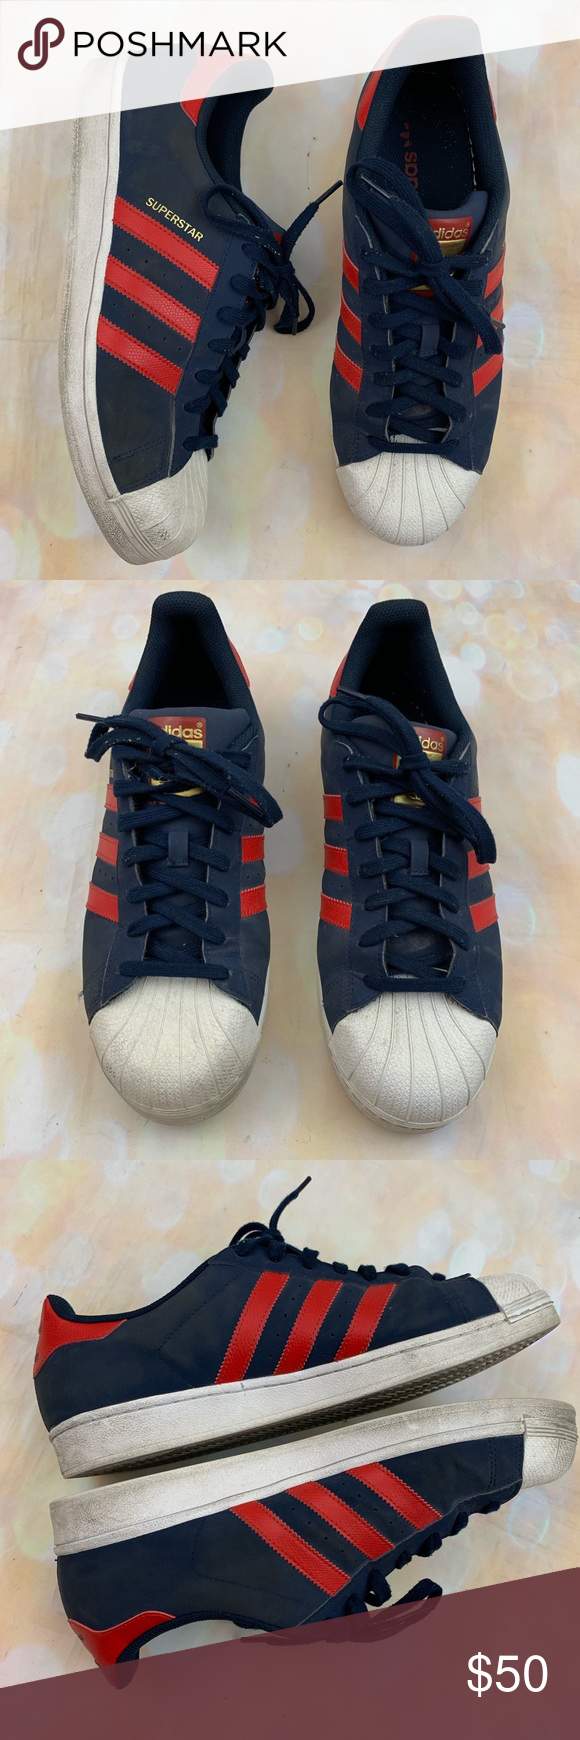 newest 9d750 1403f Adidas superstar shell navy red superman sneakers Very good pre owned  condition adidas Shoes Sneakers